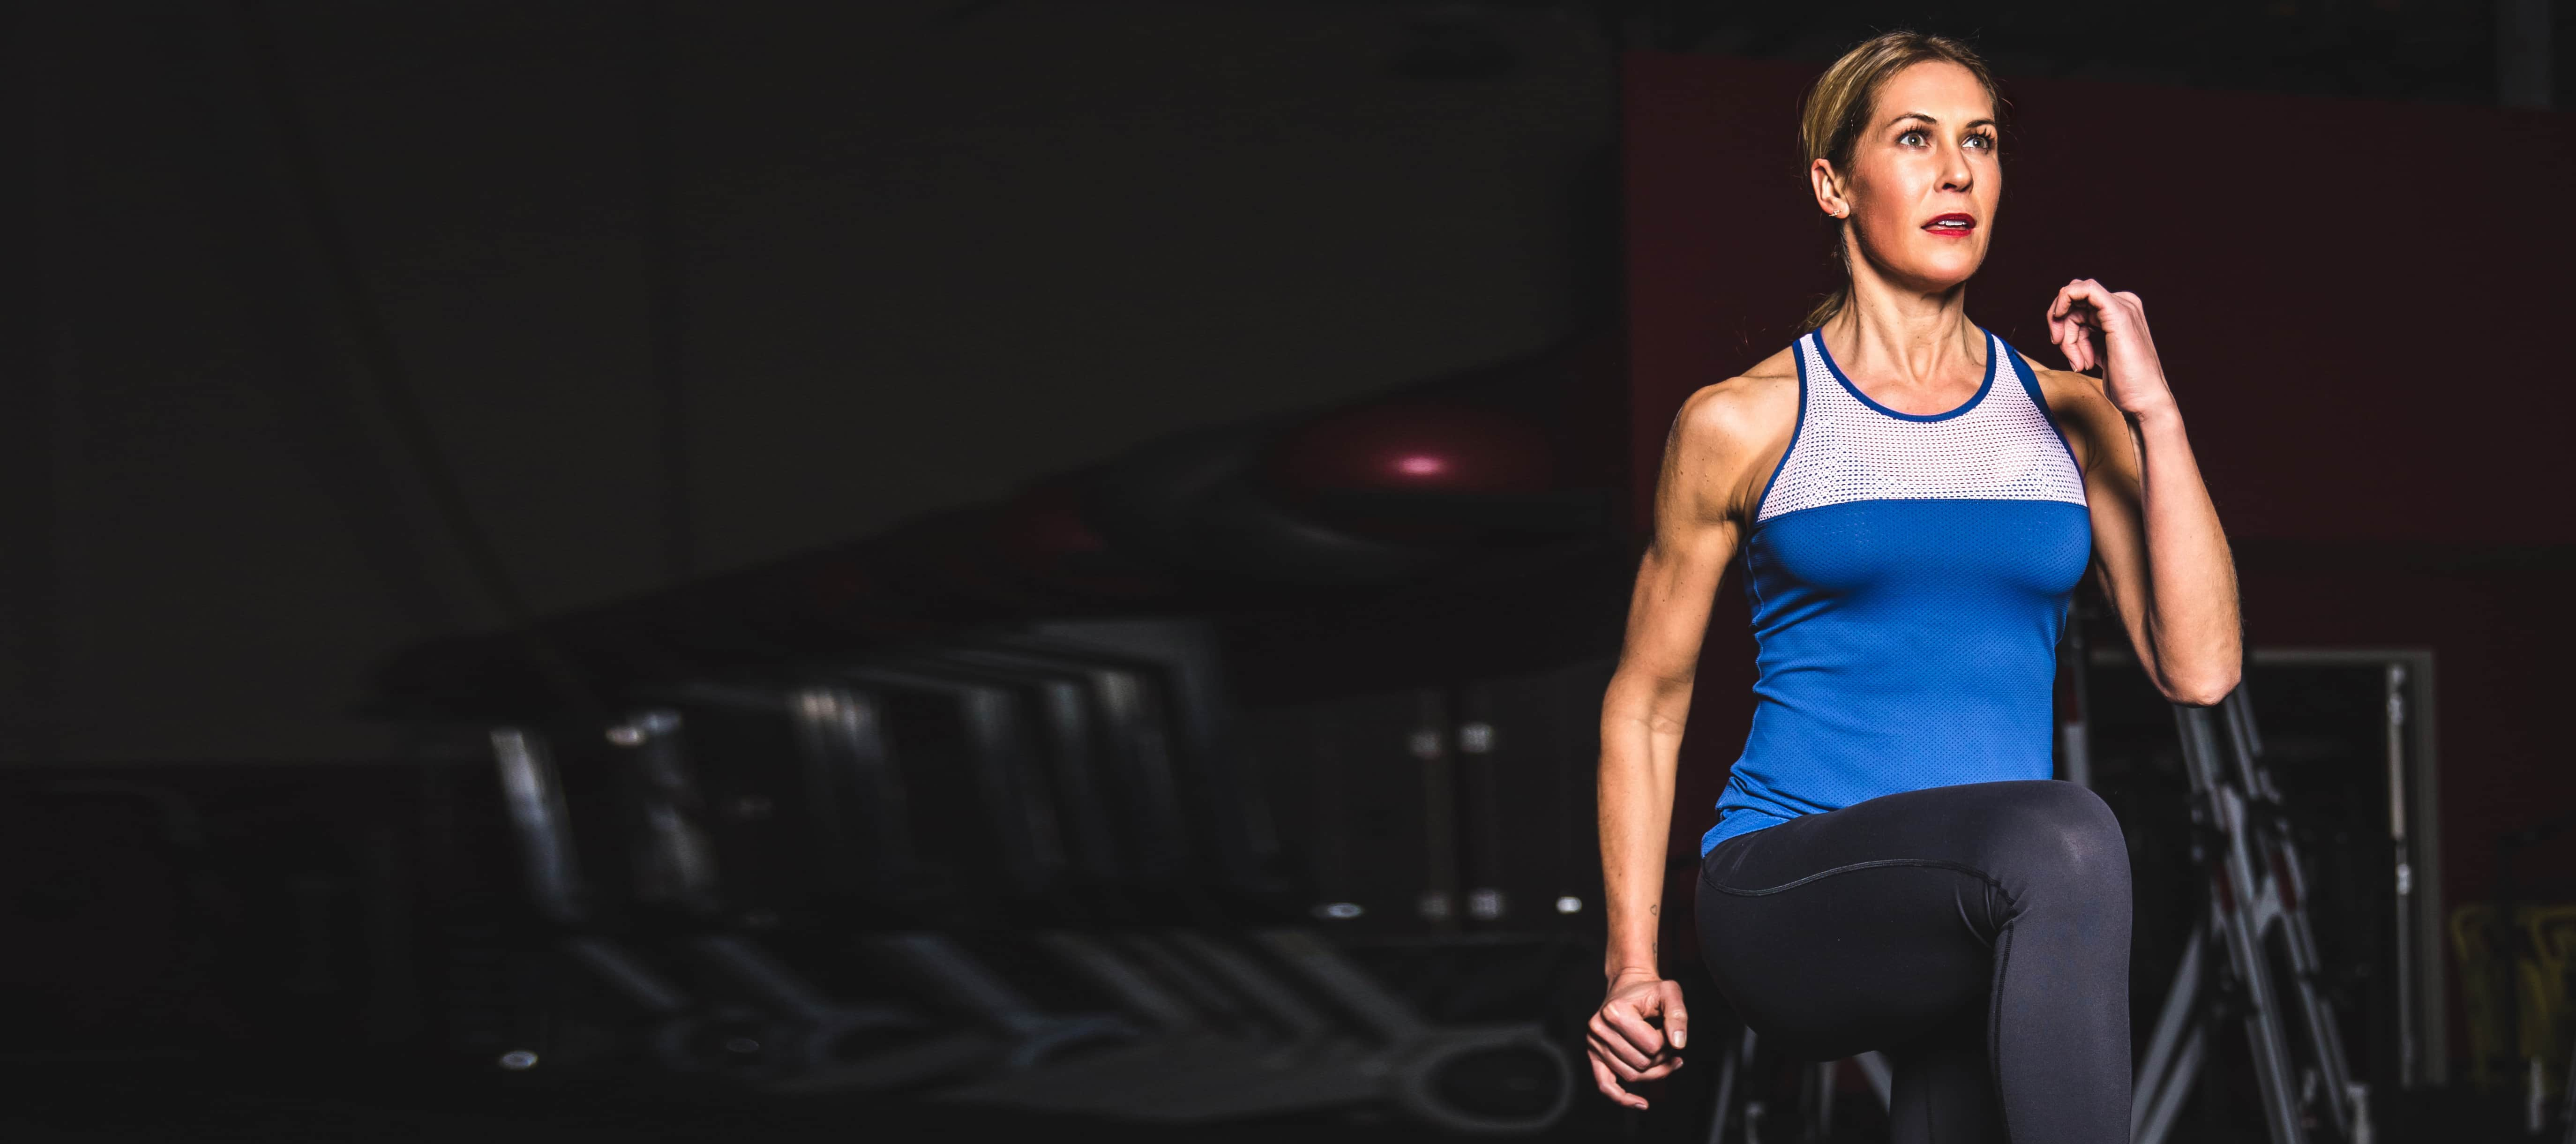 Woman in blue and grey tank top working out